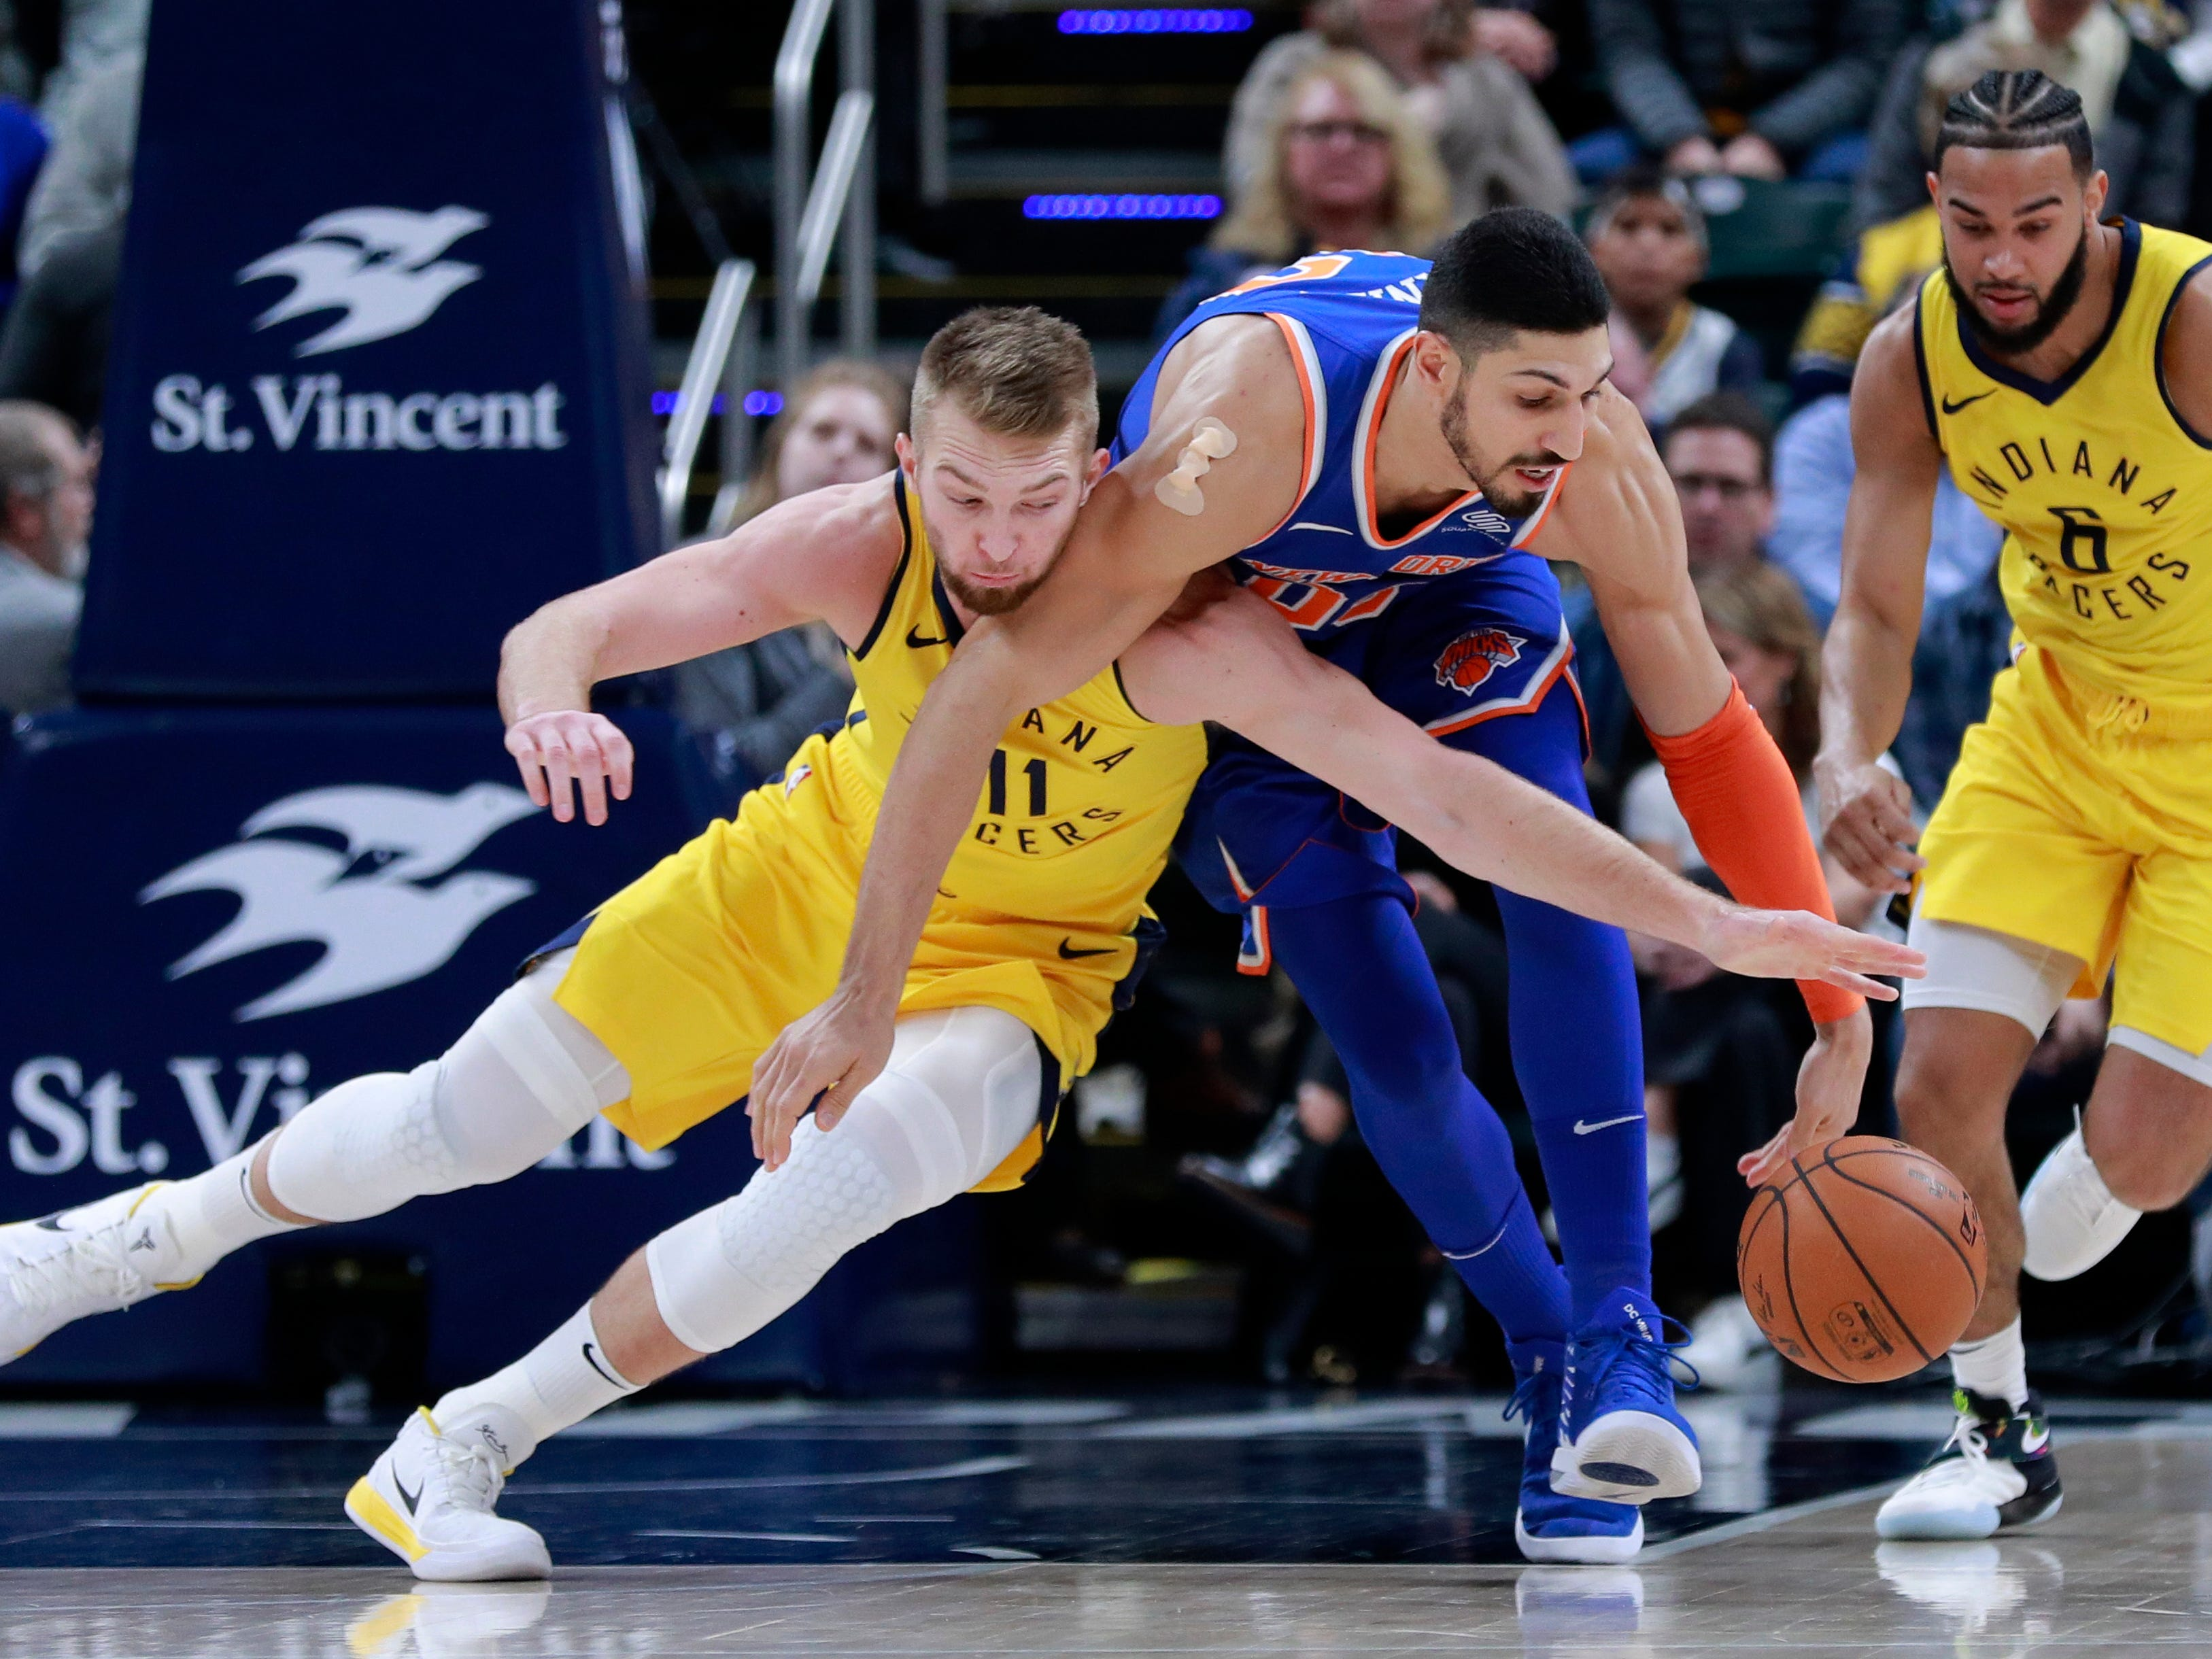 Indiana Pacers forward Domantas Sabonis, left, and New York Knicks center Enes Kanter fight for the basketball near Pacers guard Cory Joseph, right, during the first half of an NBA basketball game, Sunday, Dec. 16, 2018, in Indianapolis. (AP Photo/R Brent Smith)